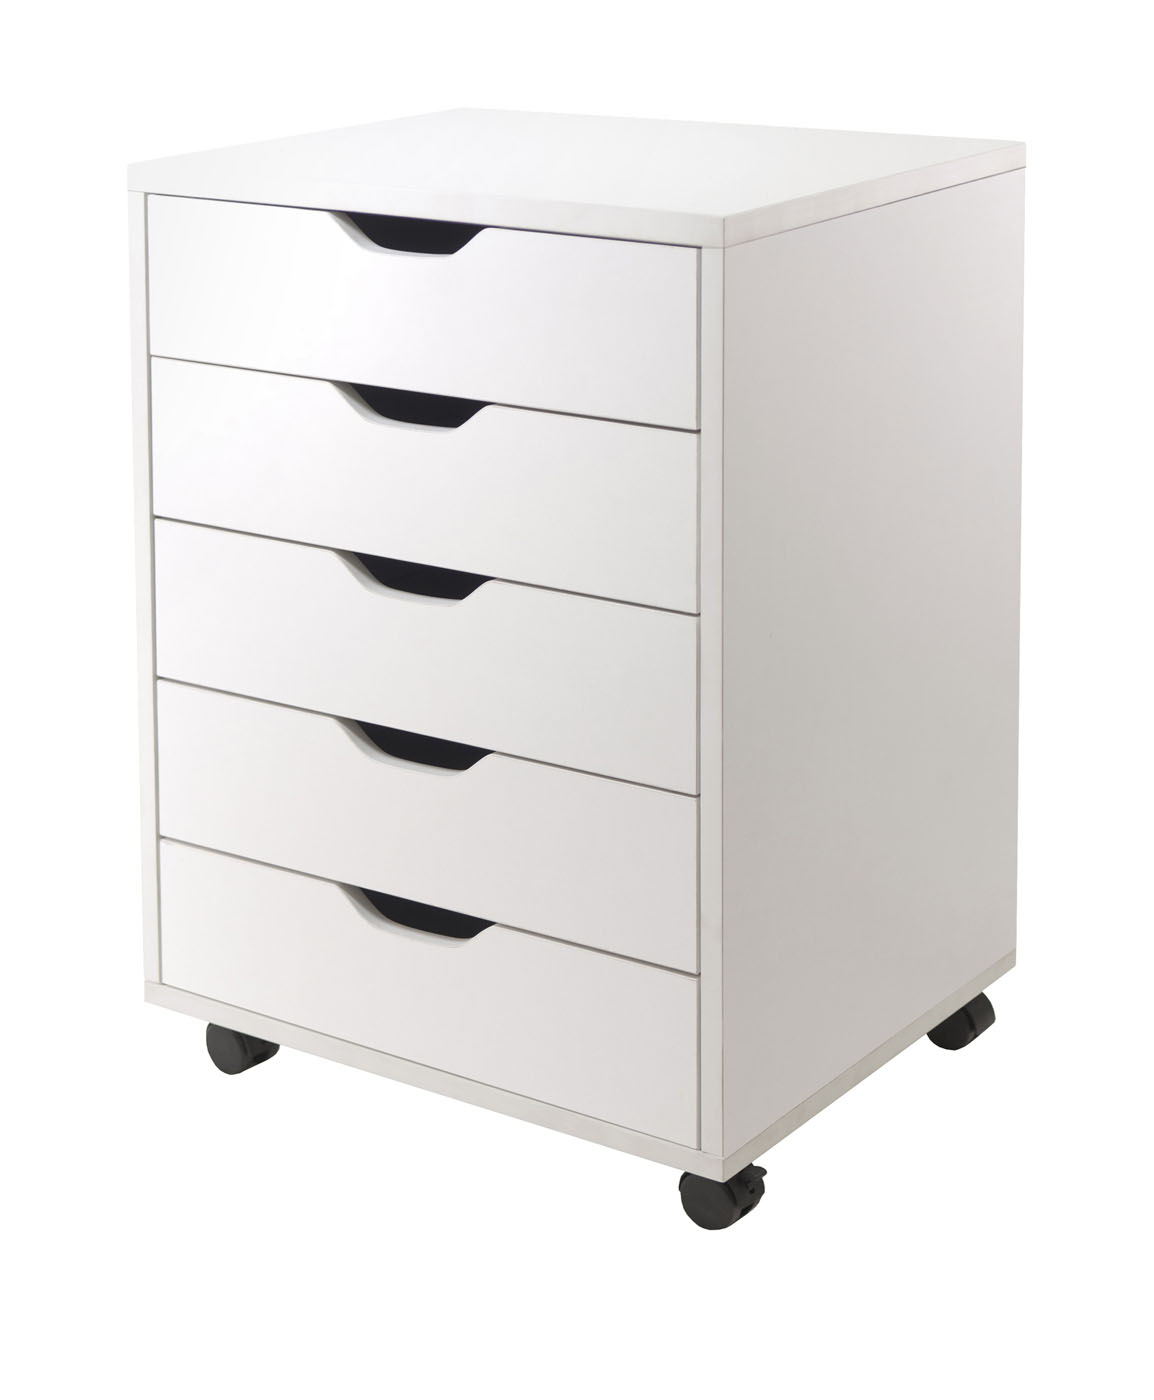 Popular School Office Storage Cabinet 29quotH Wooden Storage Cabinets